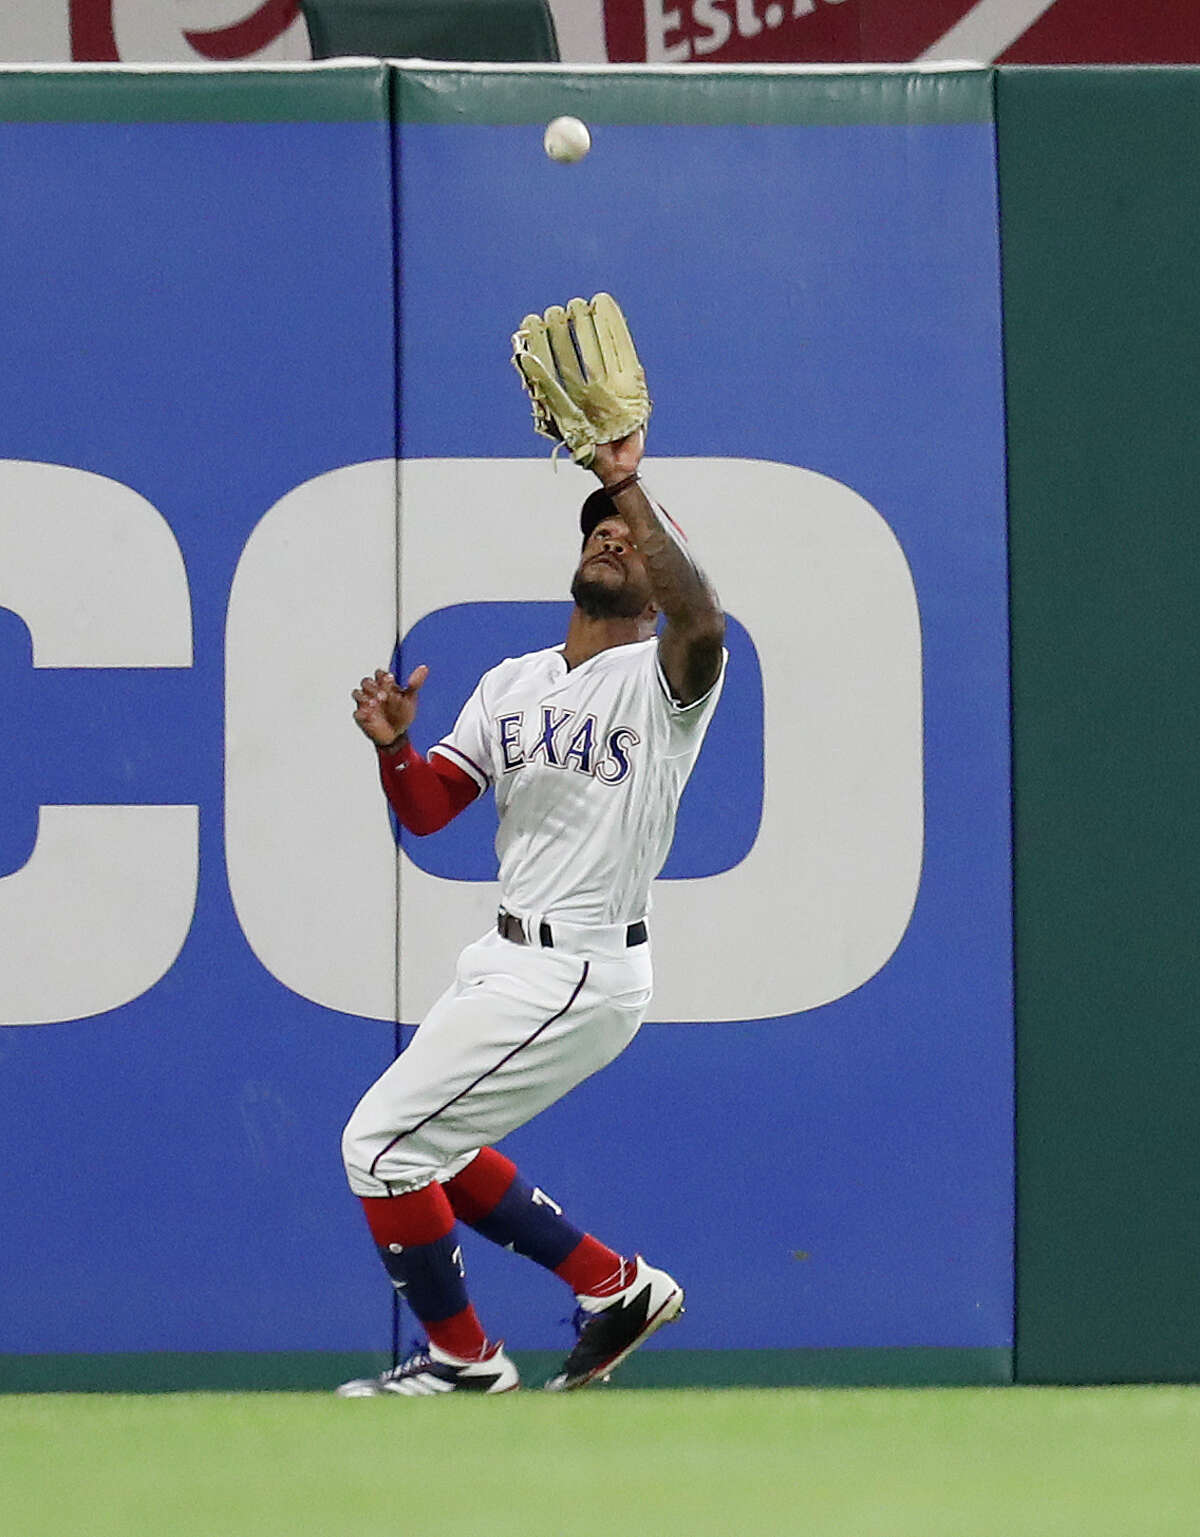 Texas Rangers left fielder Delino DeShields (3) catches Houston Astros center fielder George Springer's ball on the warning track in the fifth inning of an MLB baseball game Globe Life Park, Friday, March 30, 2018, in Arlington.